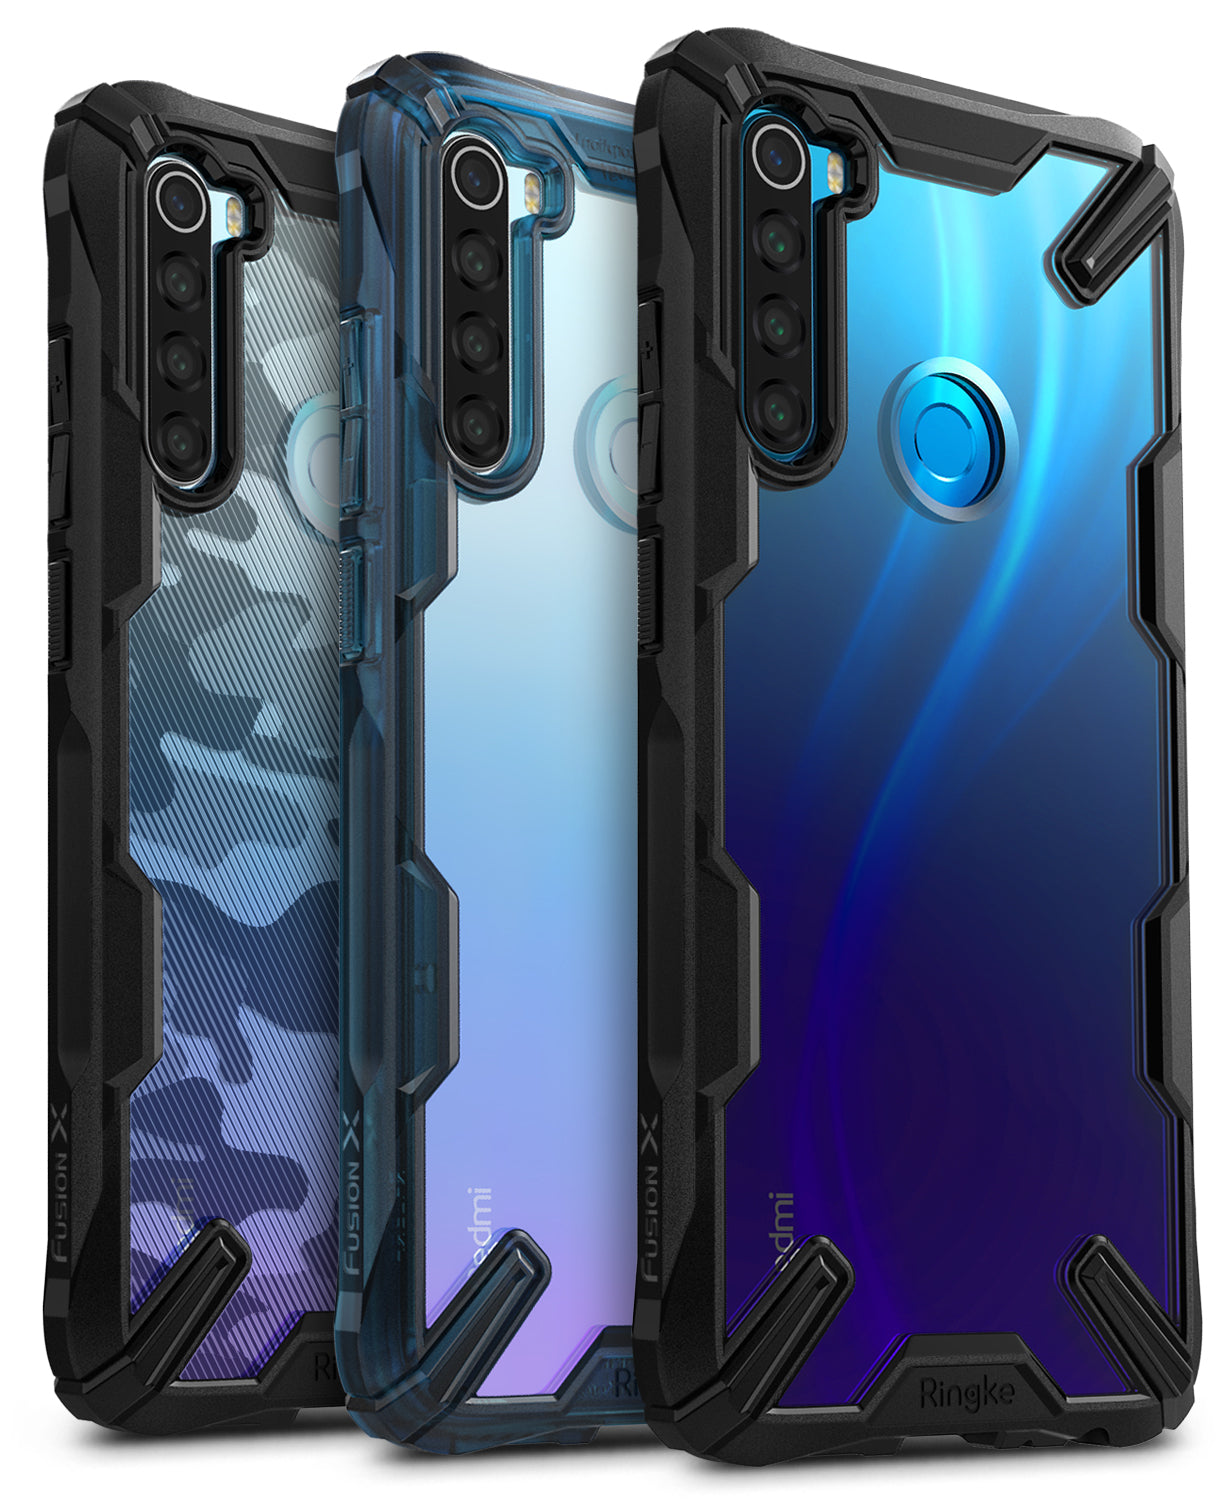 ringke fusion-x case for xiaomi redmi note 8